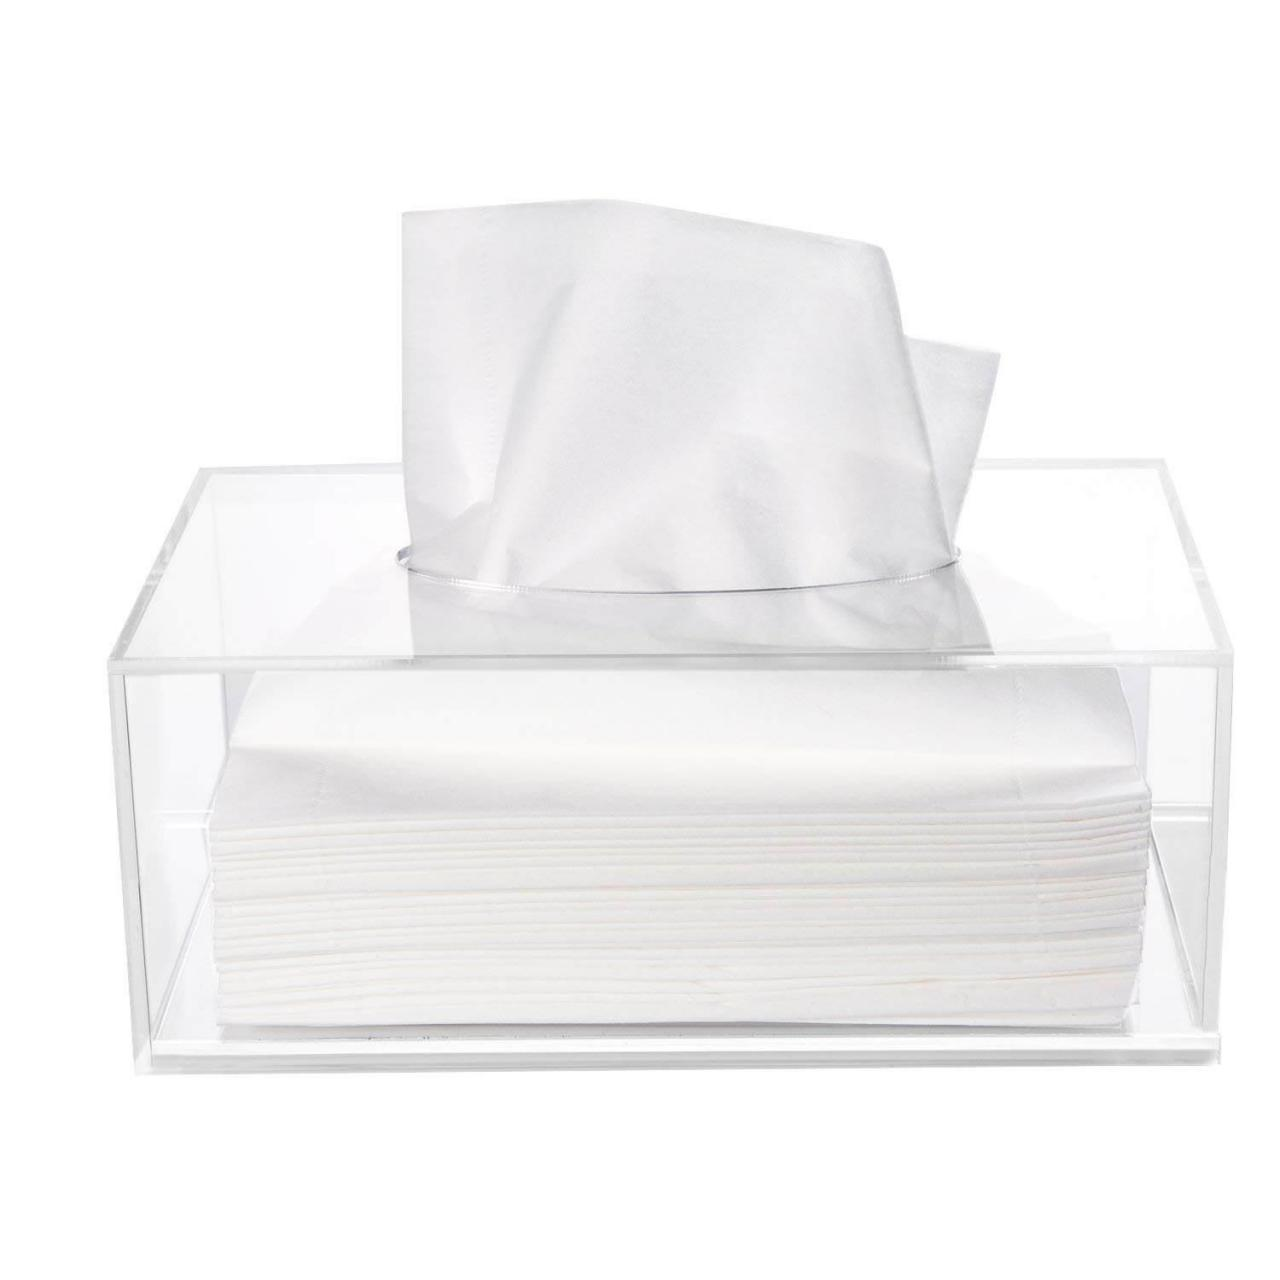 Wholesale Acrylic Display Acrylic Tissue Box from china suppliers